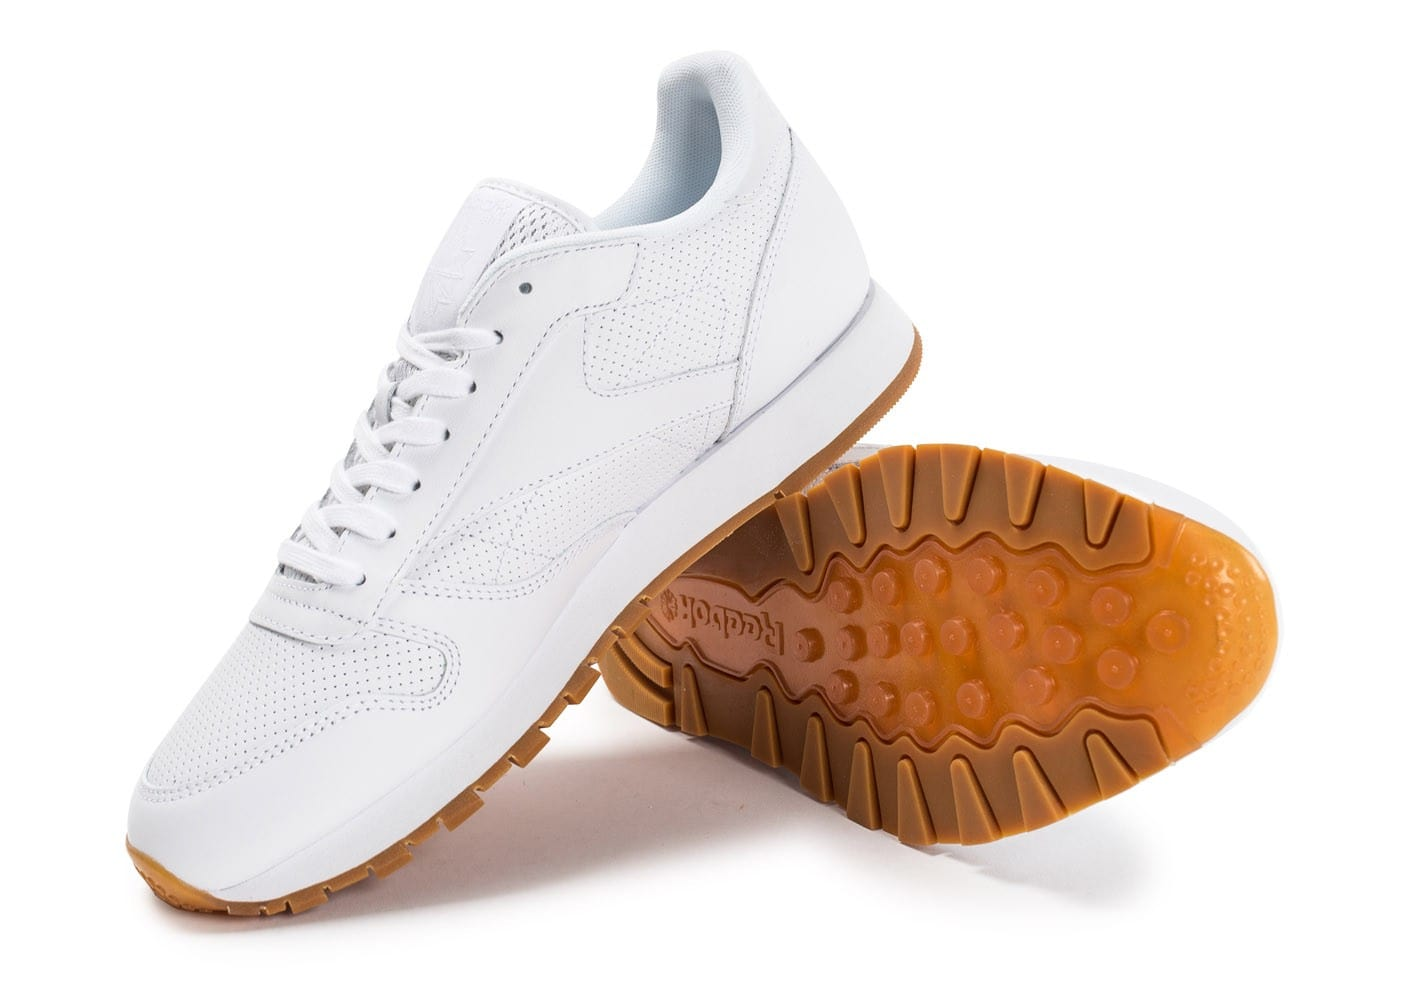 c16eb9f1b3832 Chaussures Leather Chausport blanche Baskets Classic Reebok PG homme UIRwg